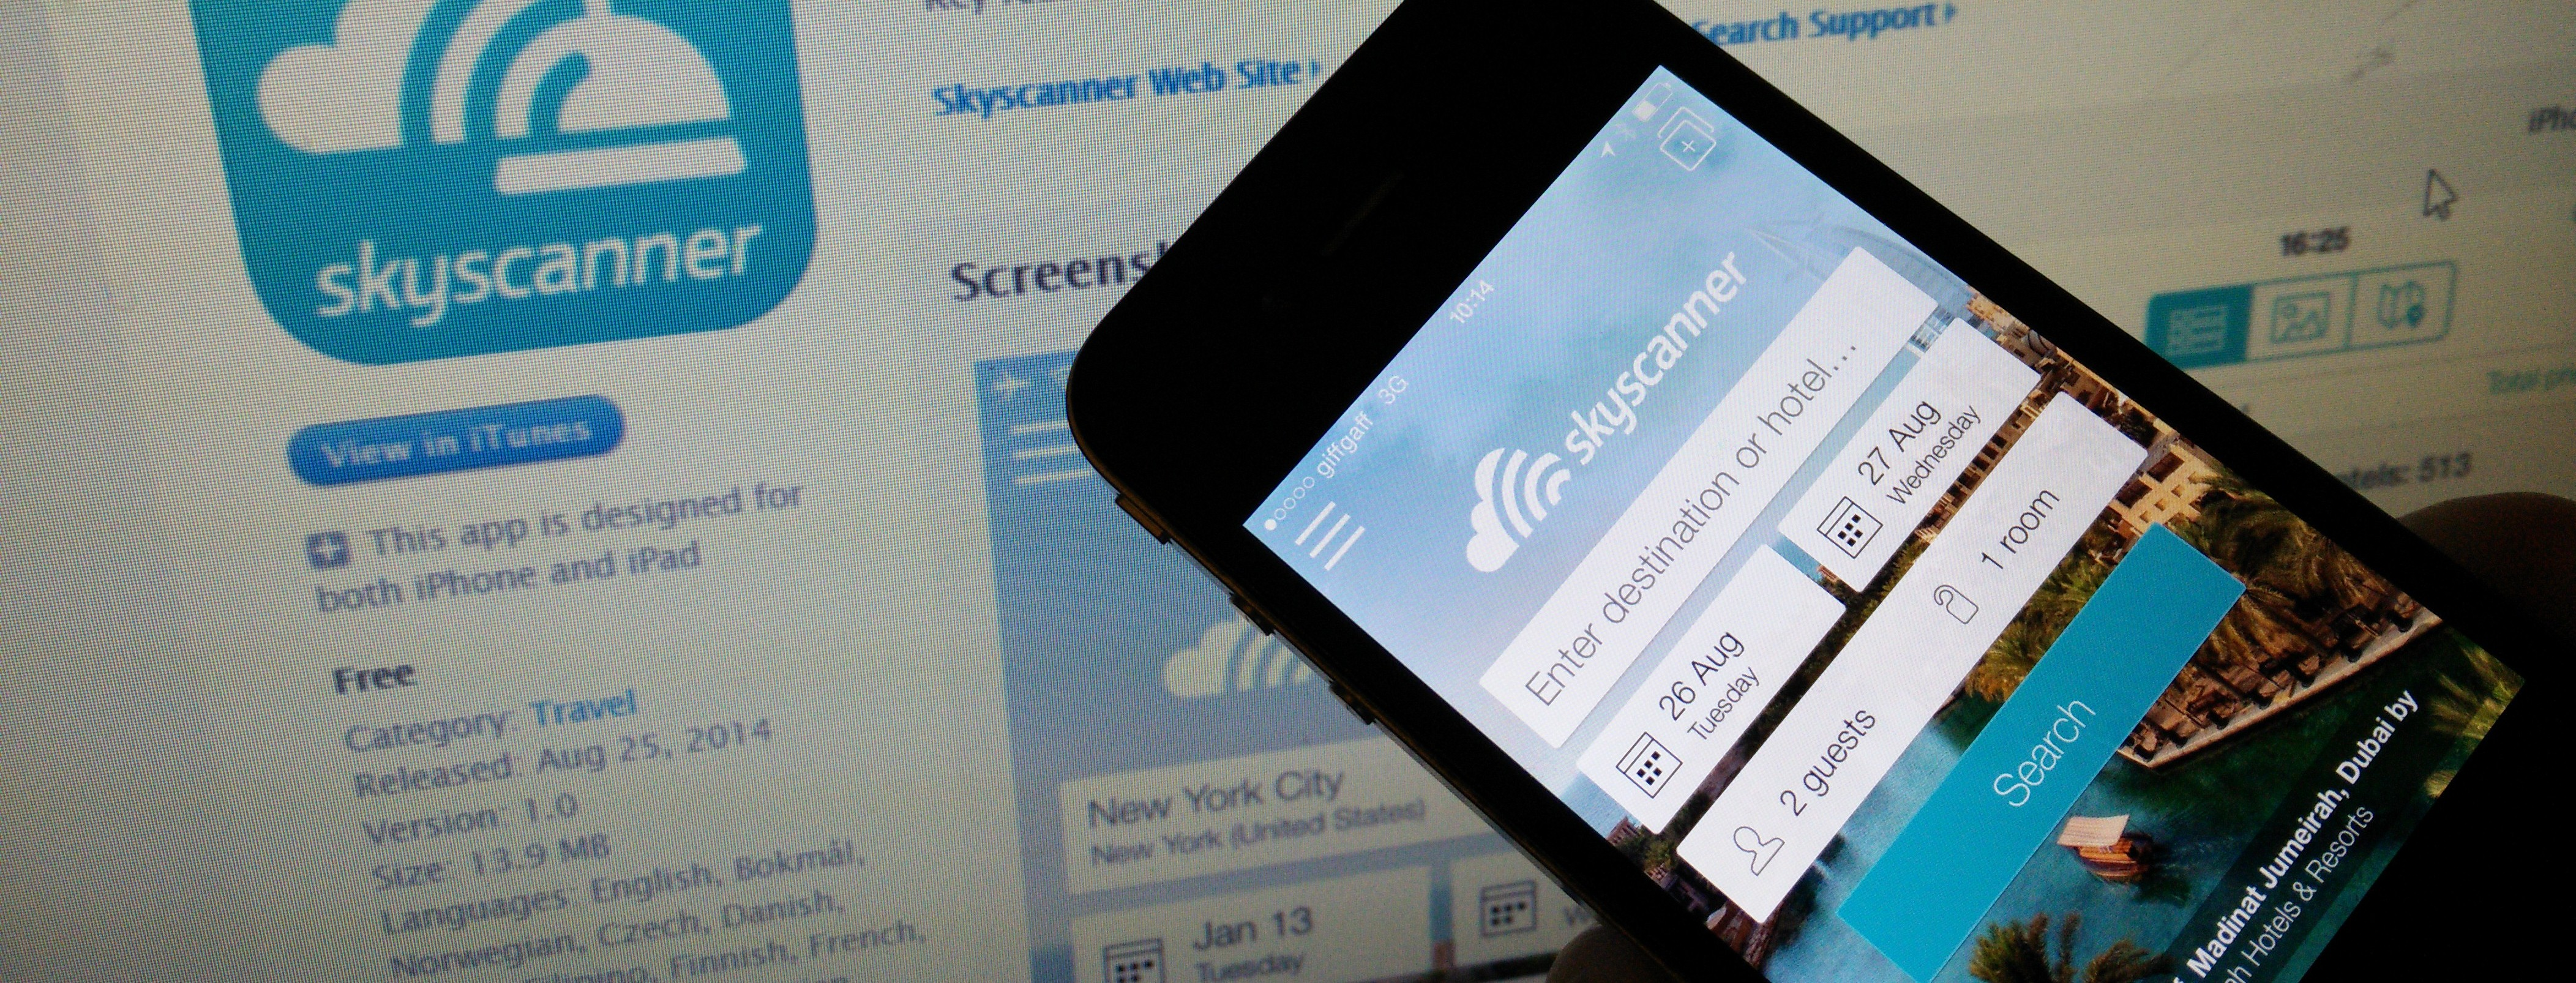 Skyscanner Hotel Search Launches for iOS